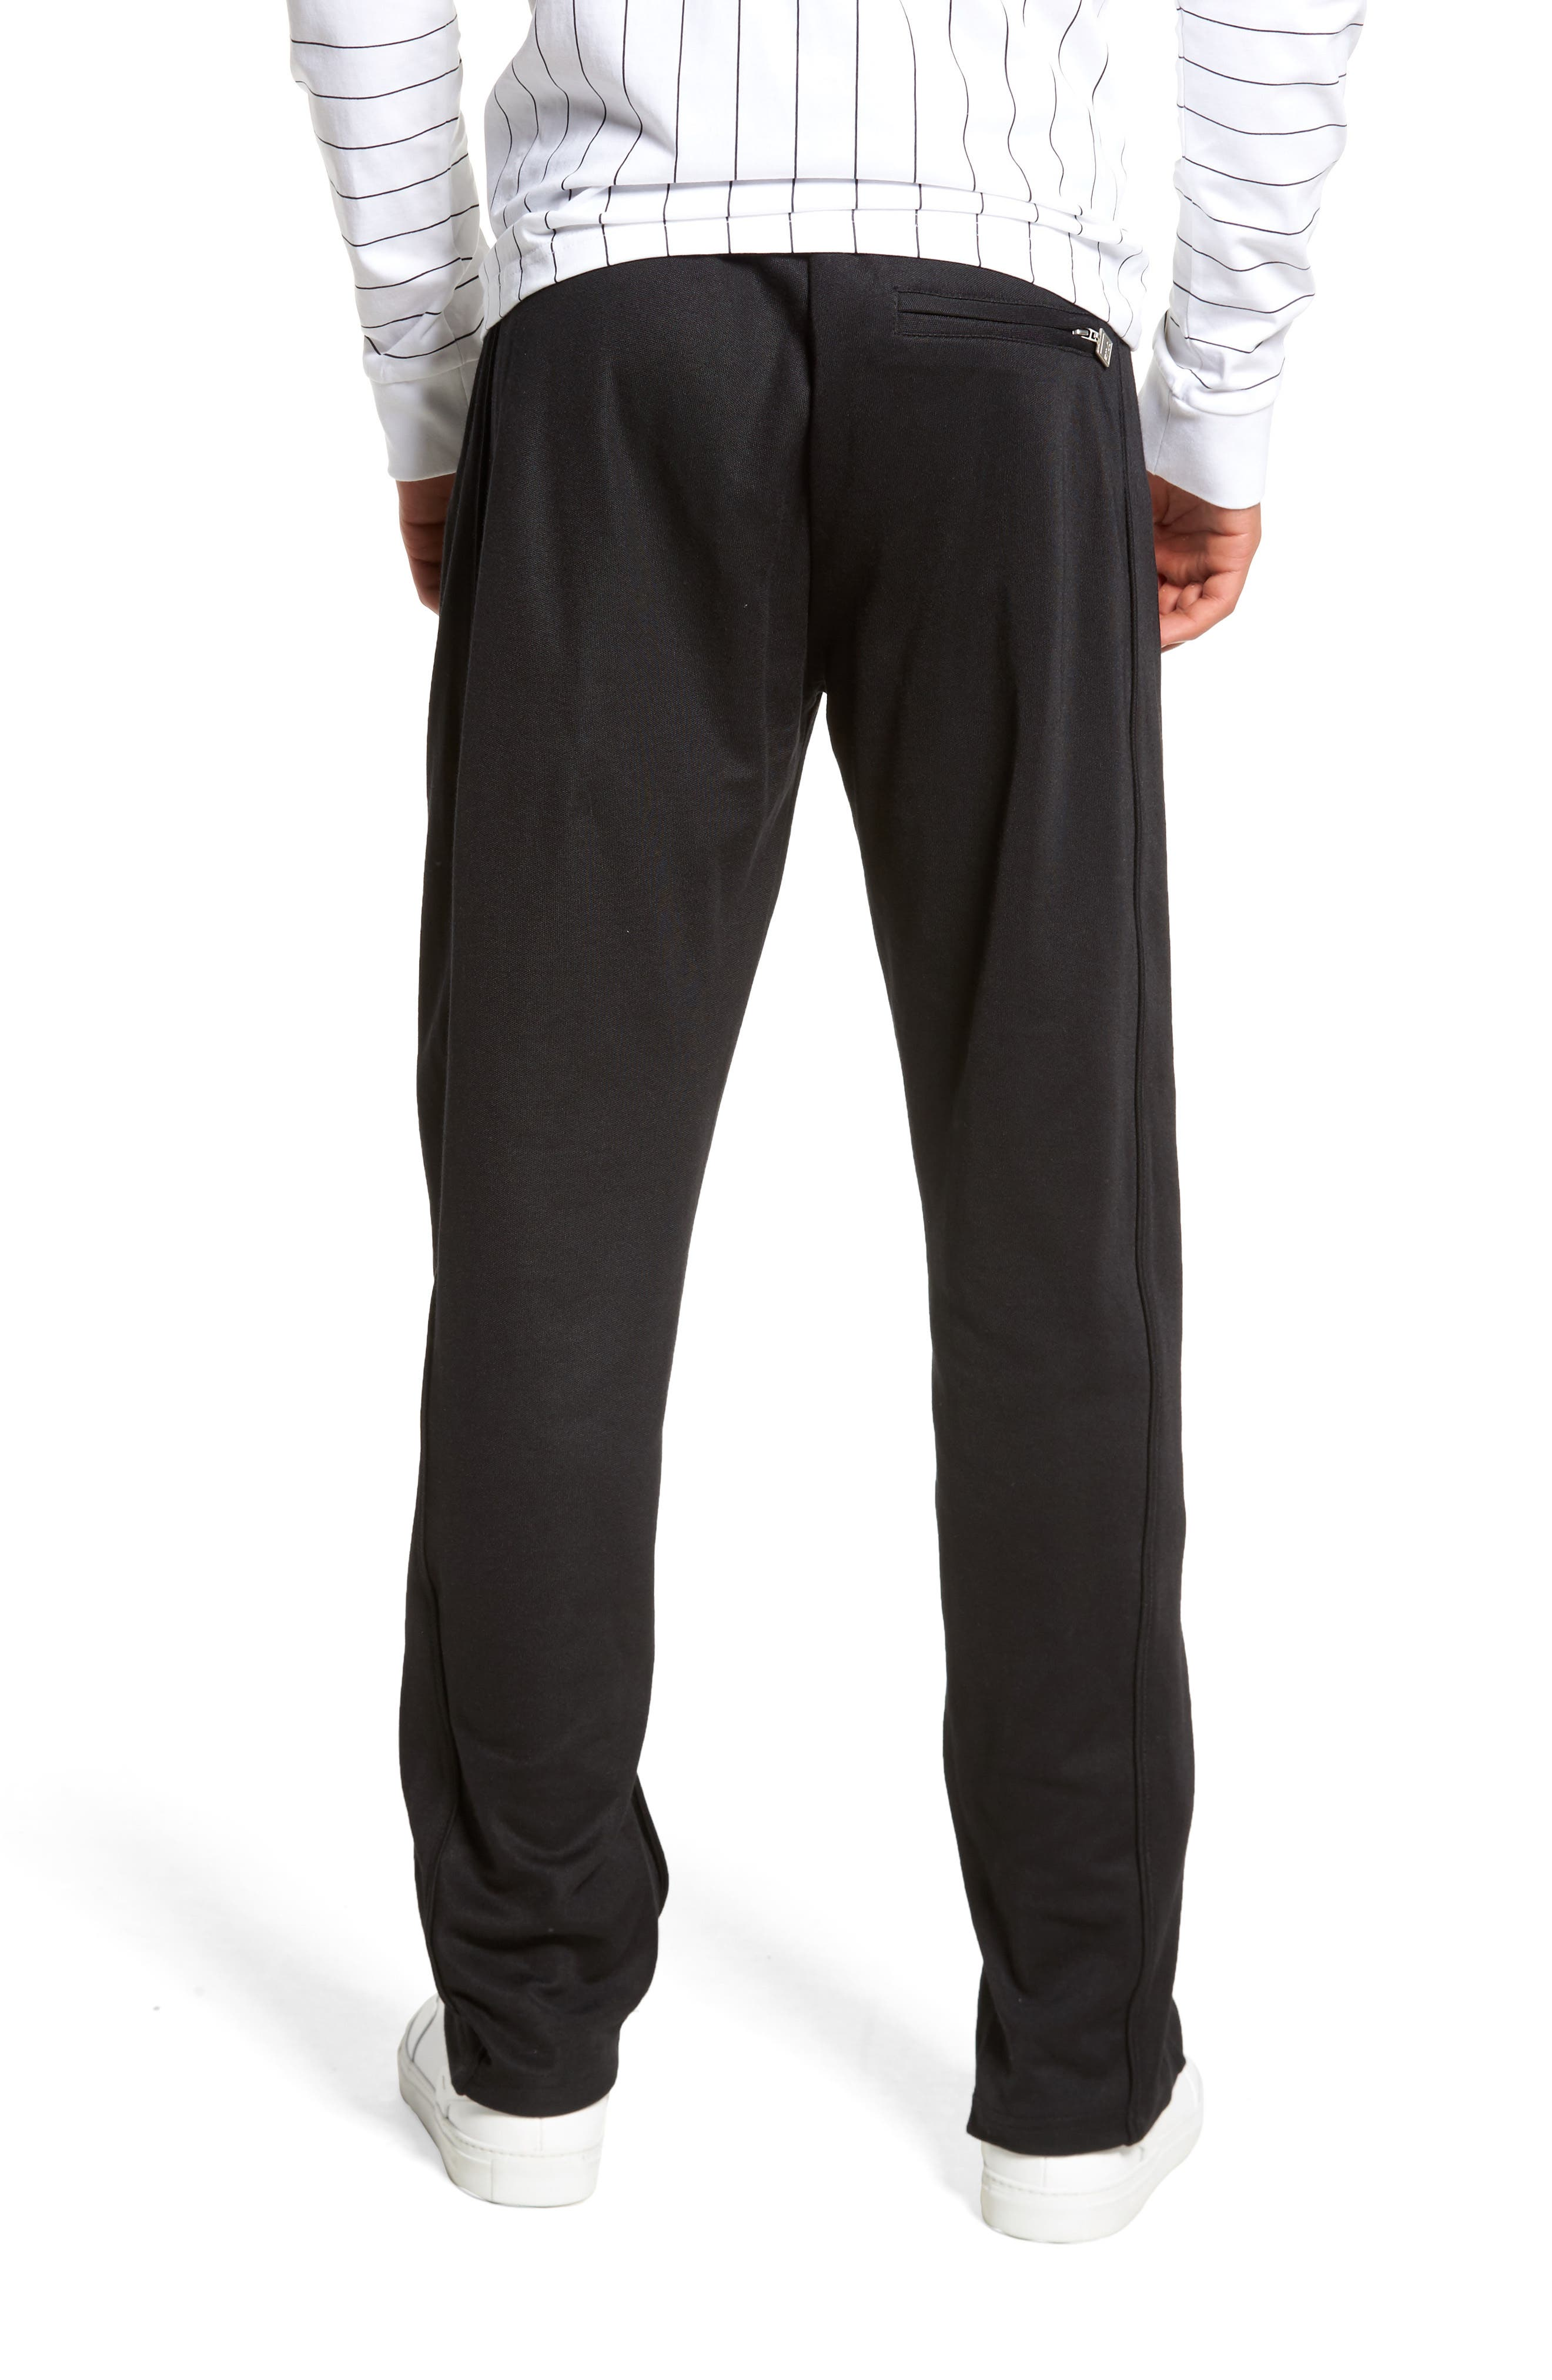 Bianchi Pants,                             Alternate thumbnail 2, color,                             Black